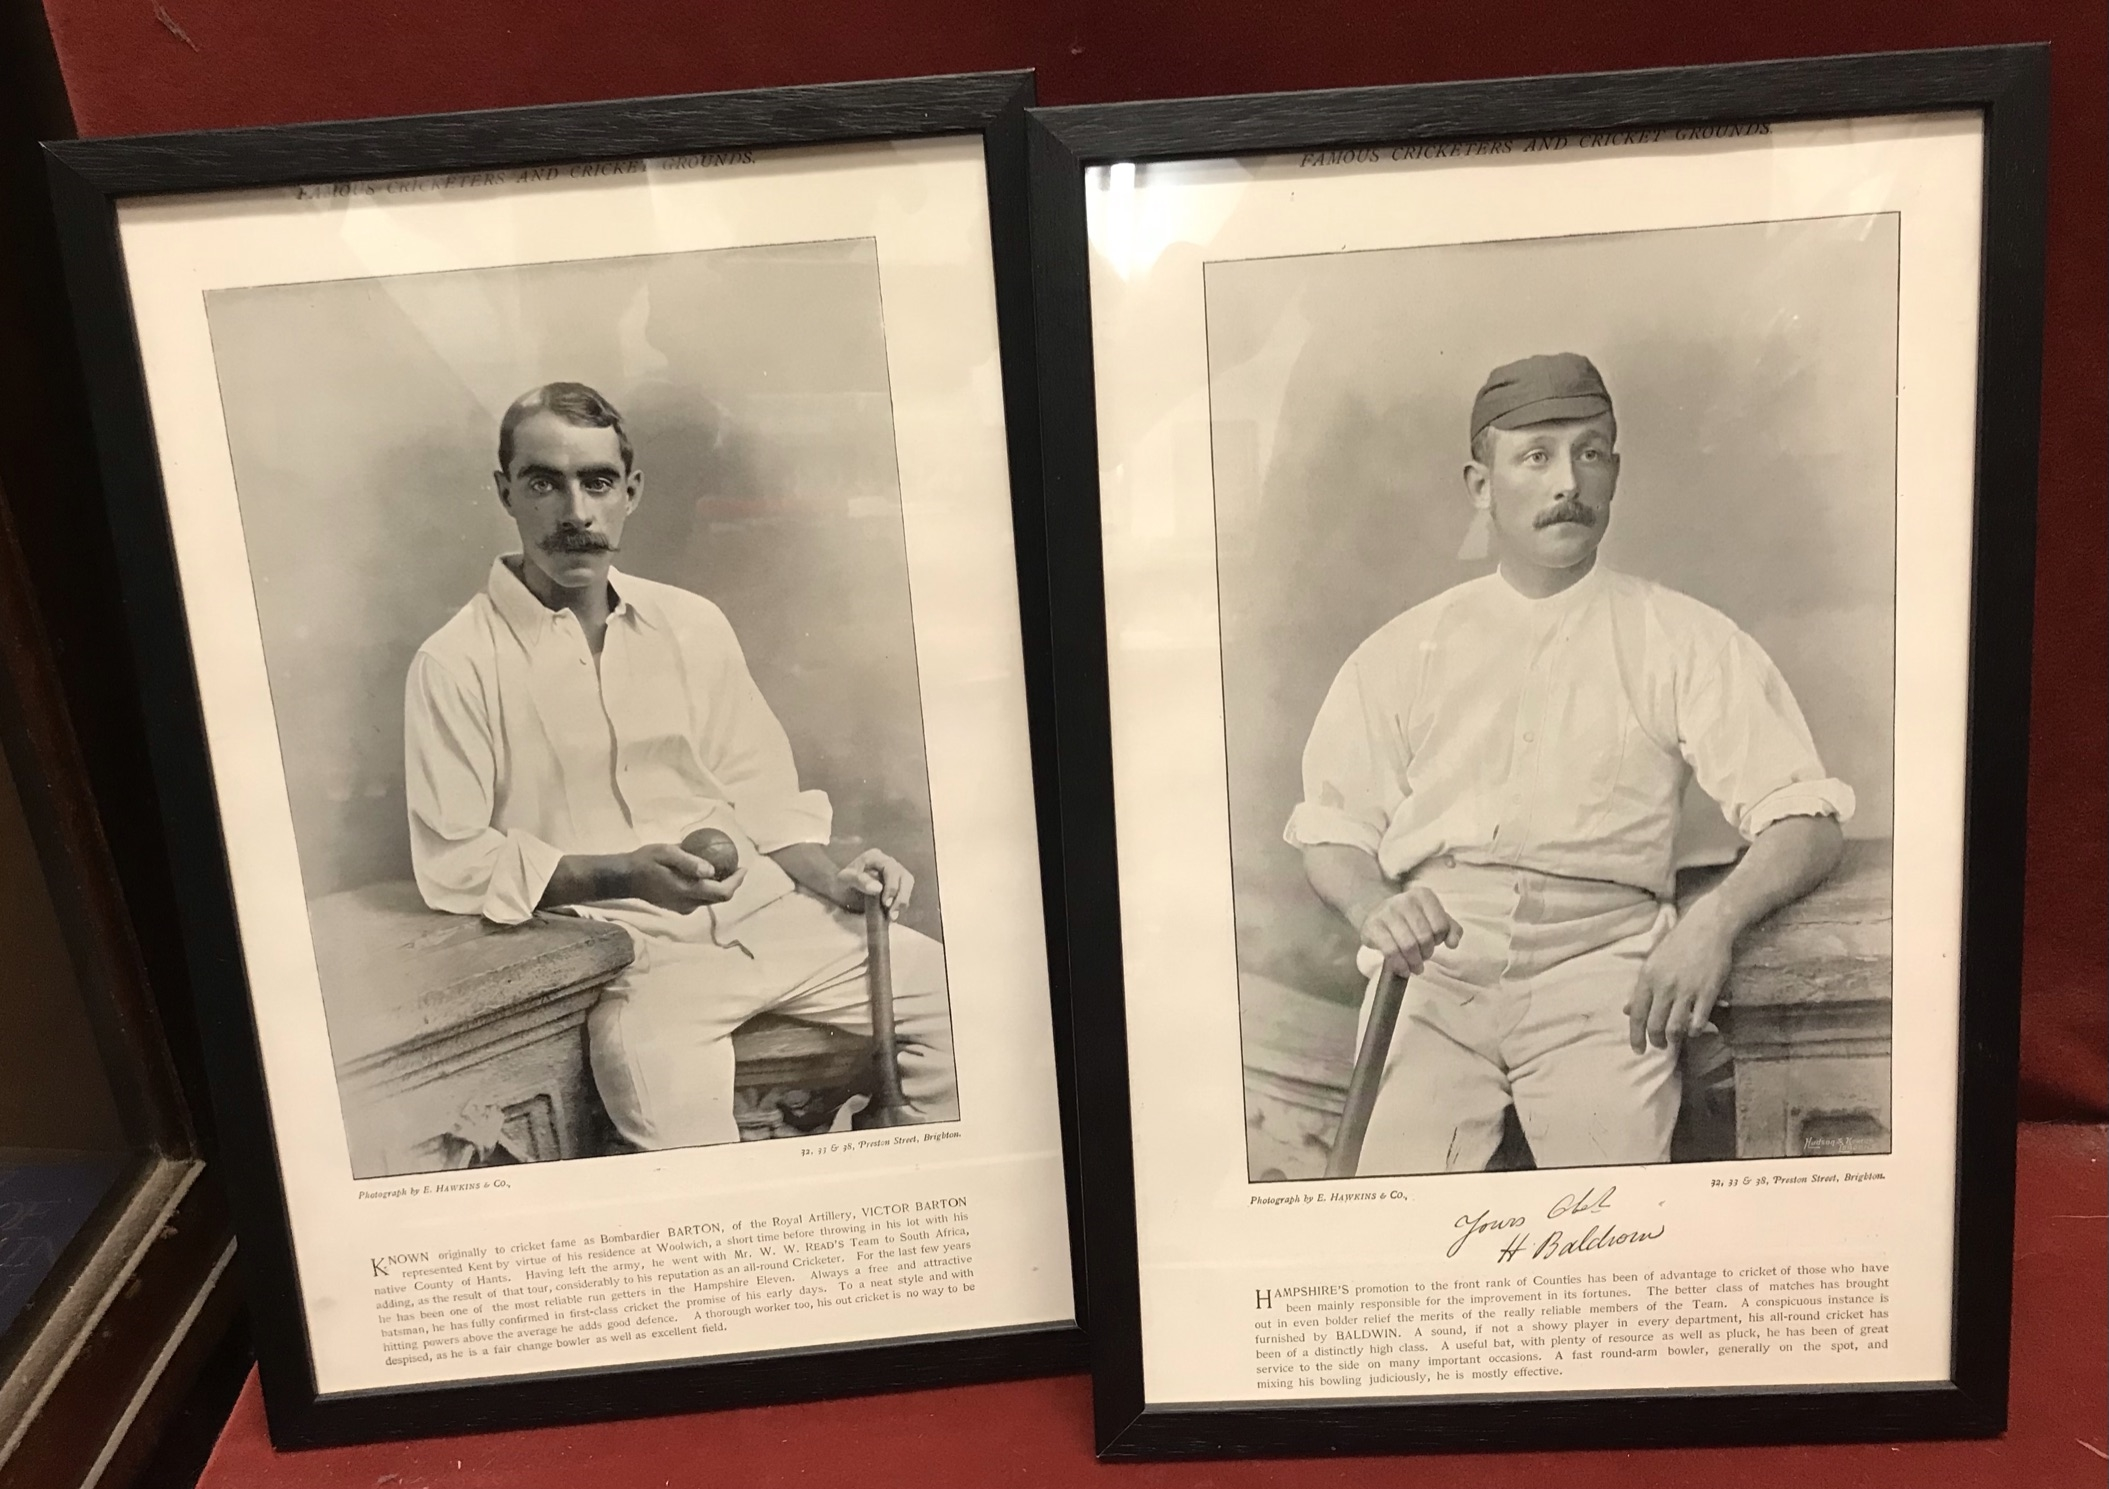 """Victorian Cricketers - Black and white photographs 7"""" x 12"""" Printed in """"Famous Cricketers and - Image 2 of 2"""